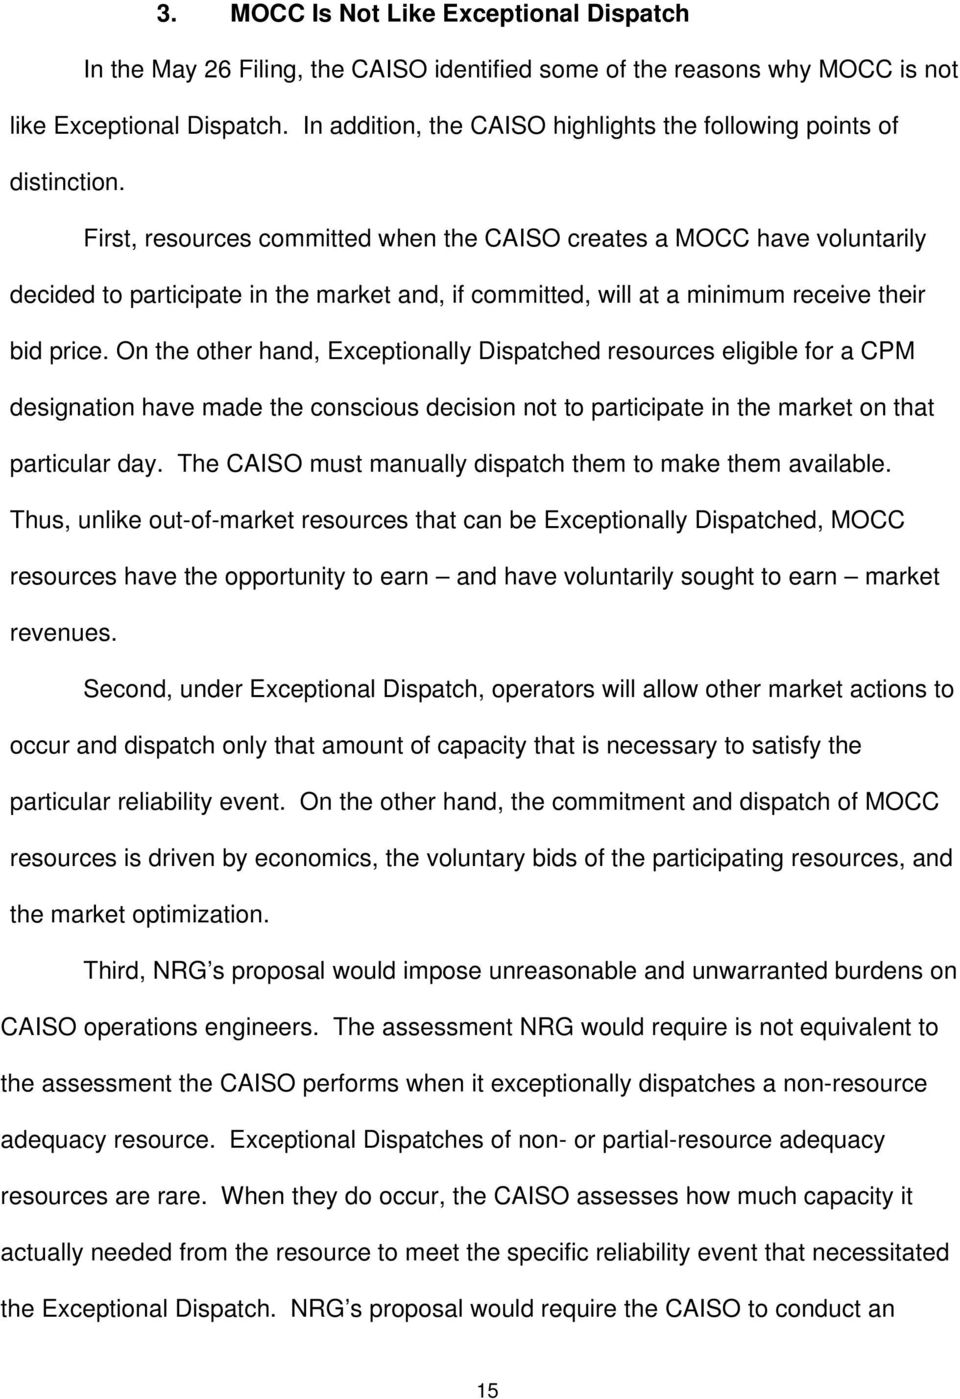 First, resources committed when the CAISO creates a MOCC have voluntarily decided to participate in the market and, if committed, will at a minimum receive their bid price.